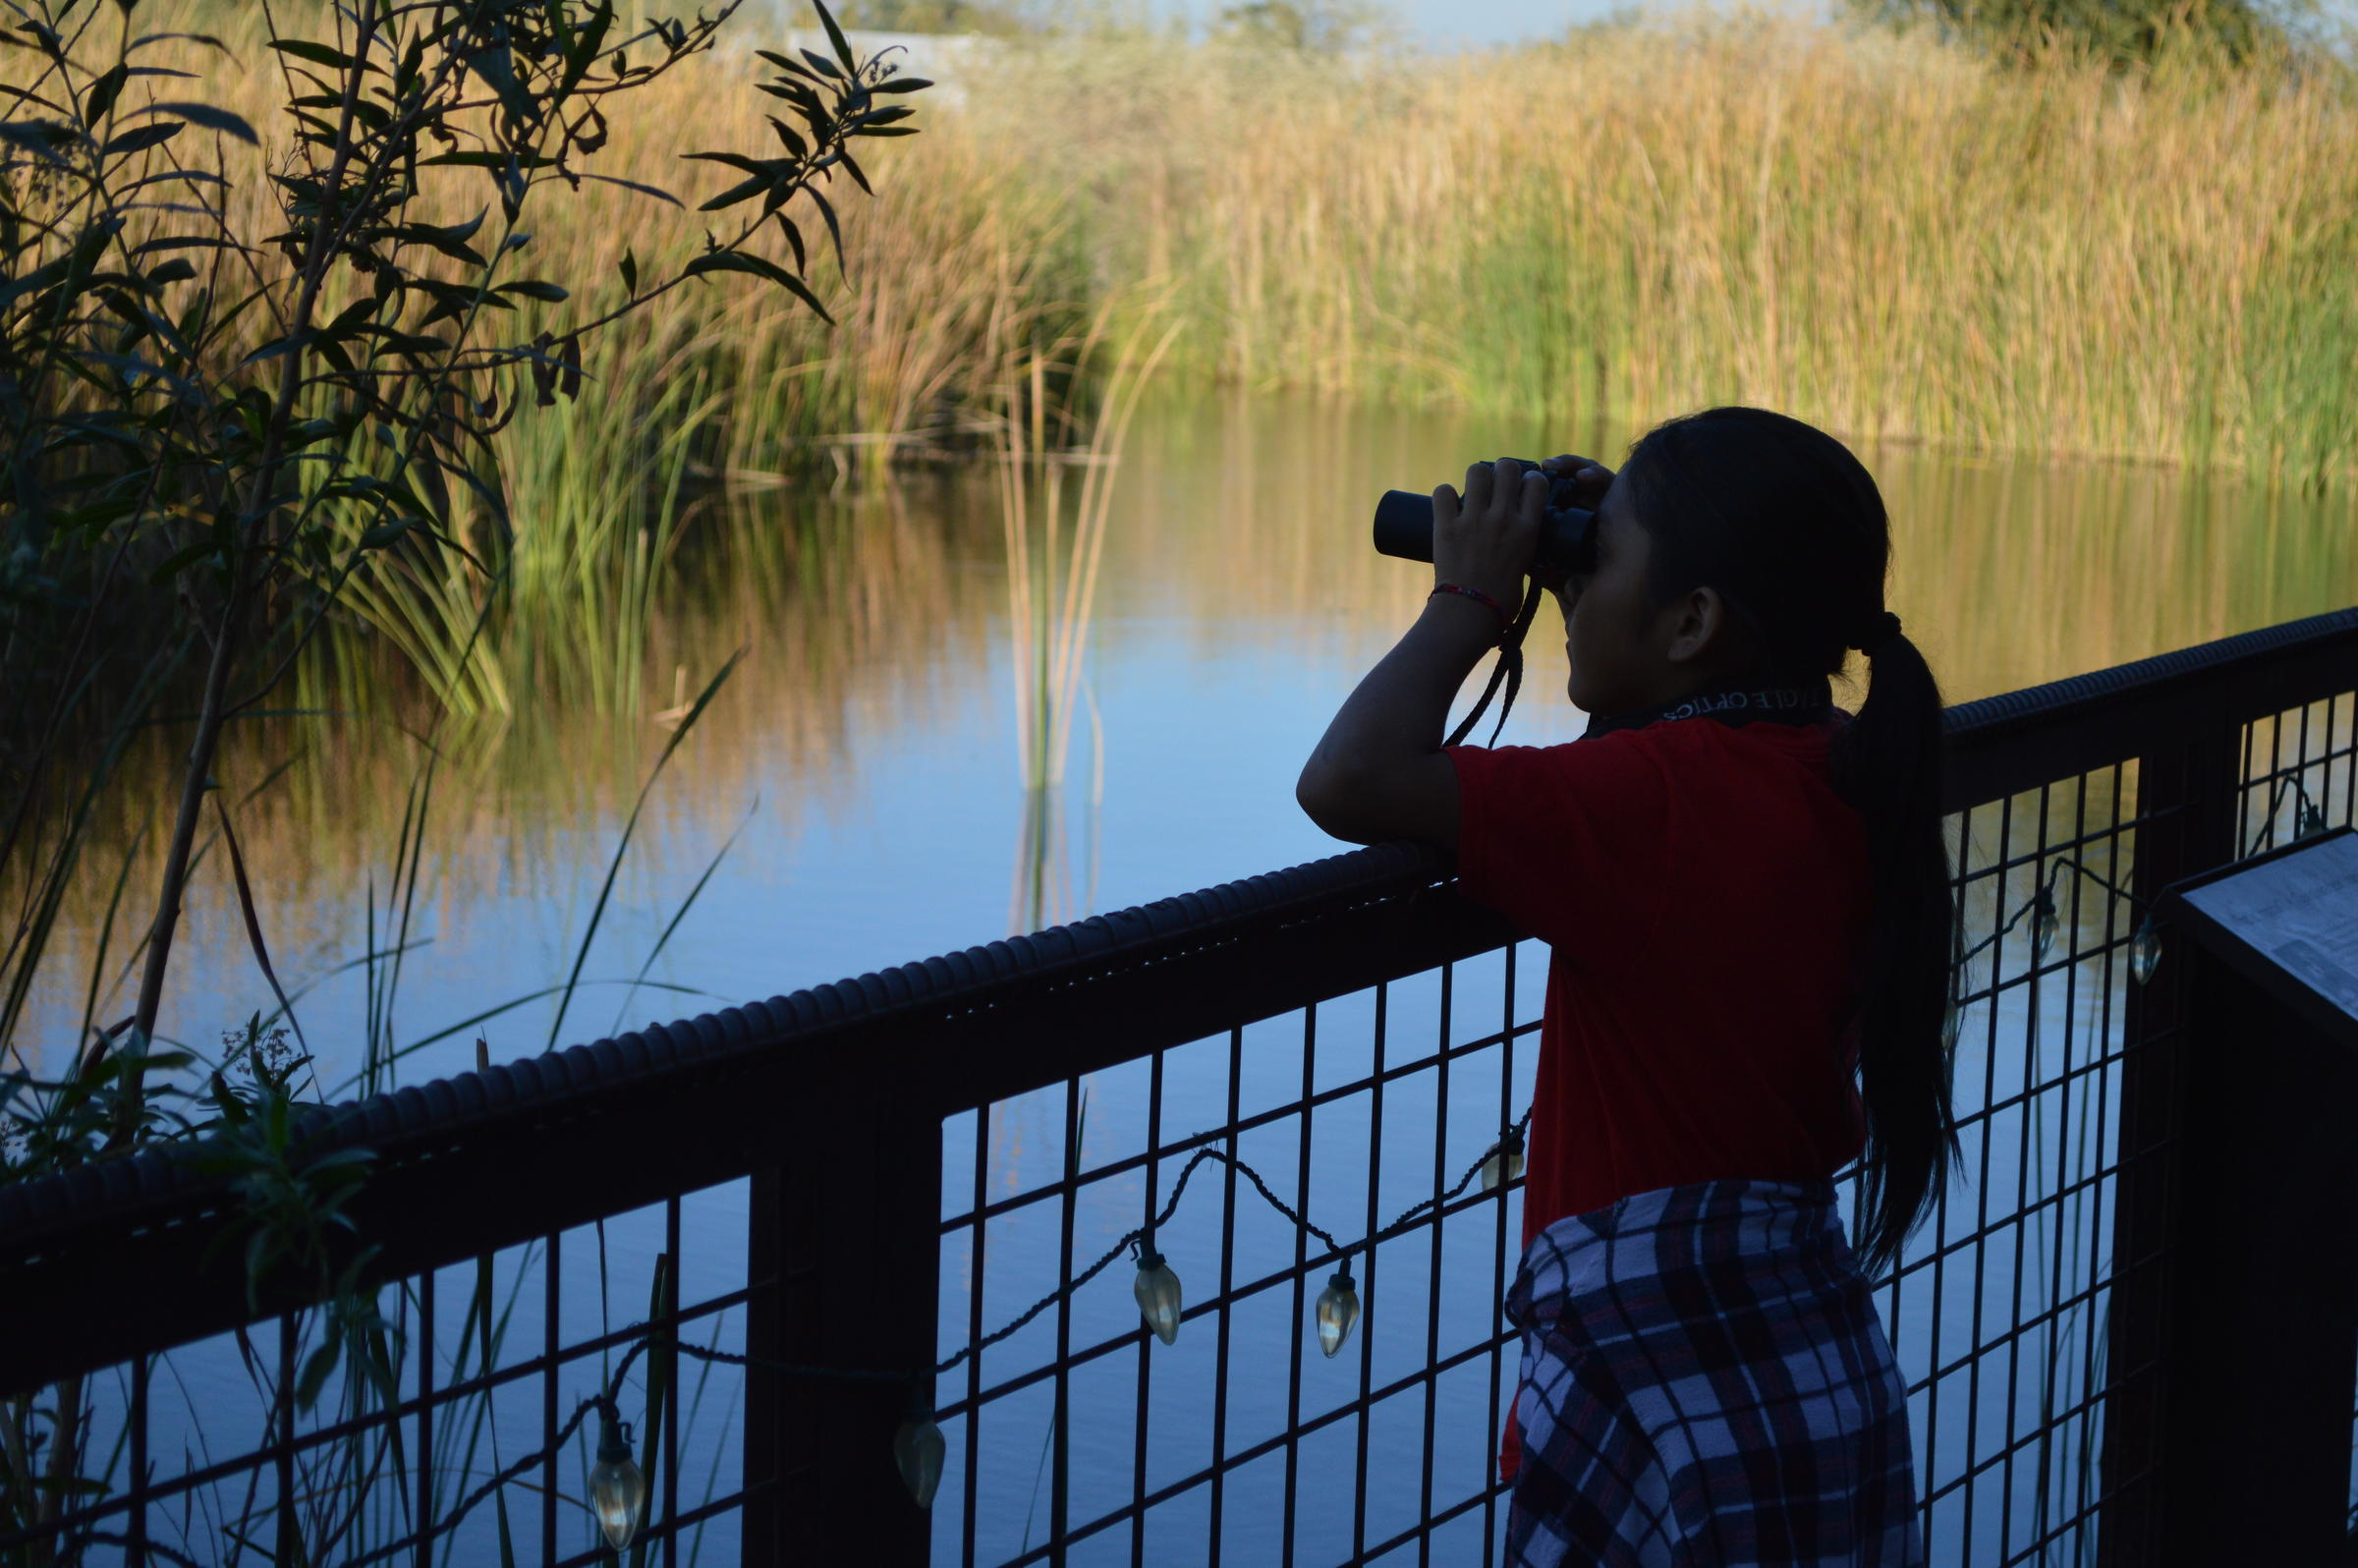 A girl looks out with binoculars over the pond.